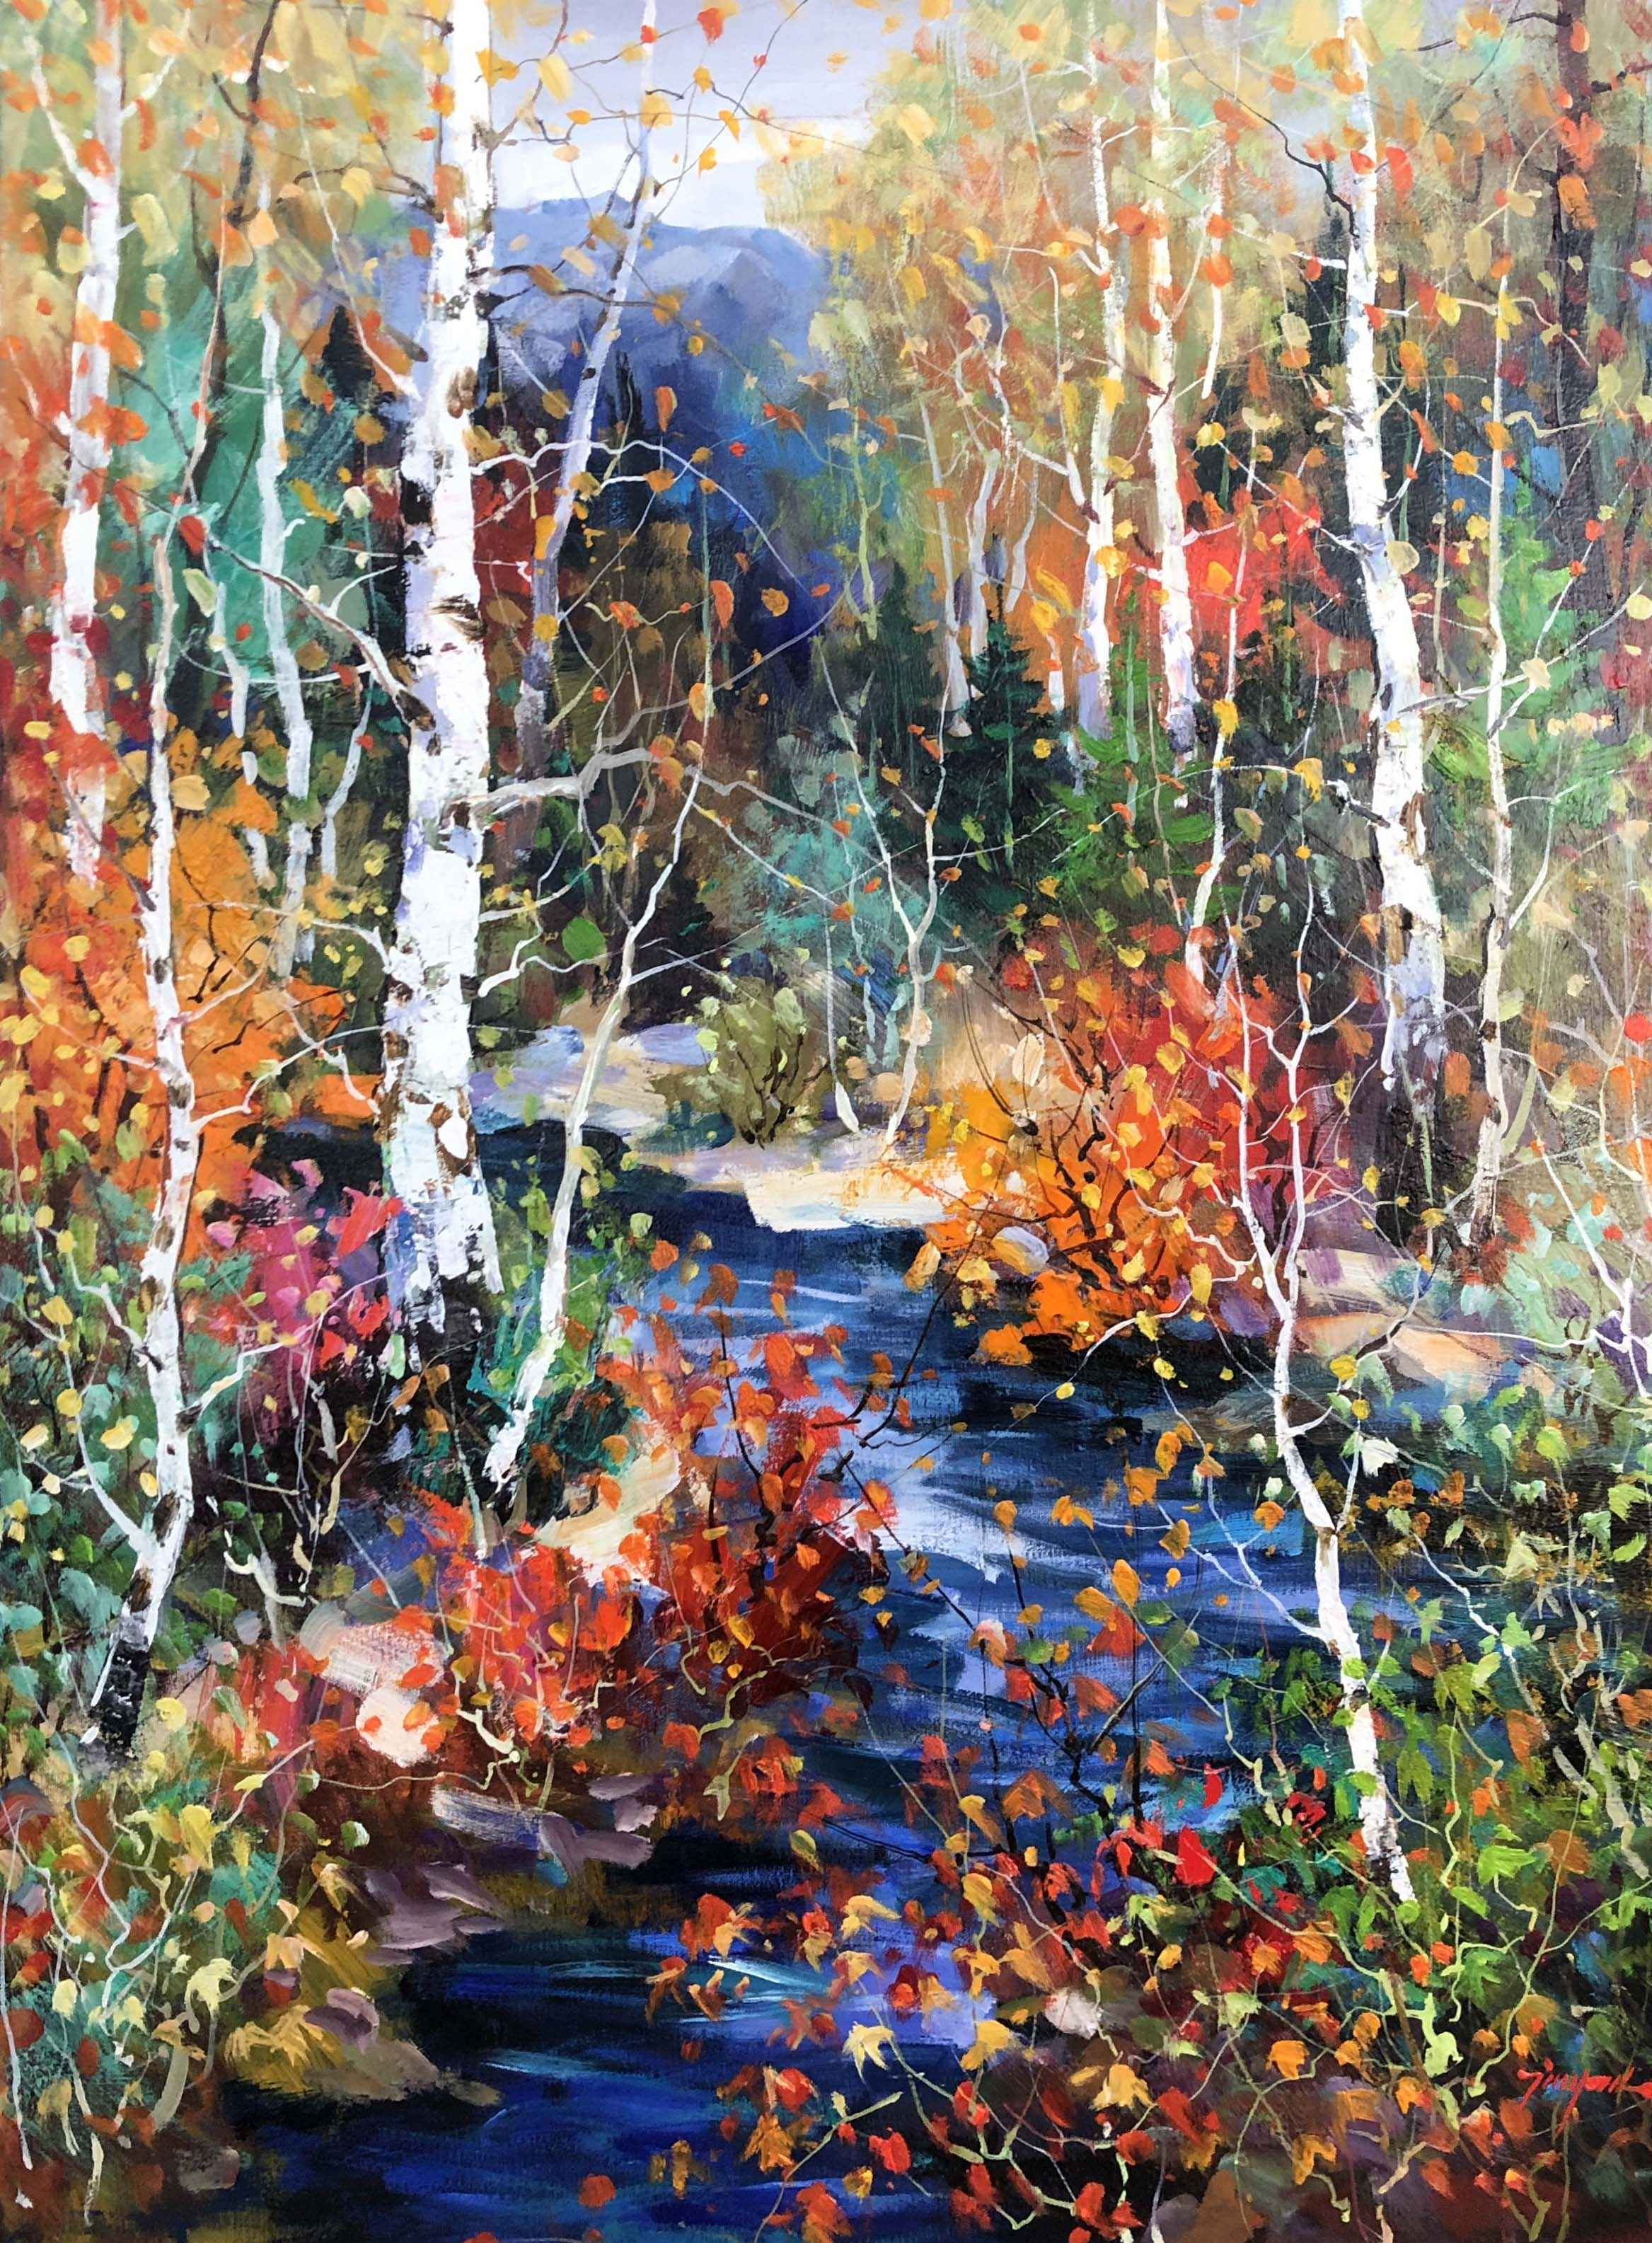 Impression of Nature by  Tinyan Chan - Masterpiece Online